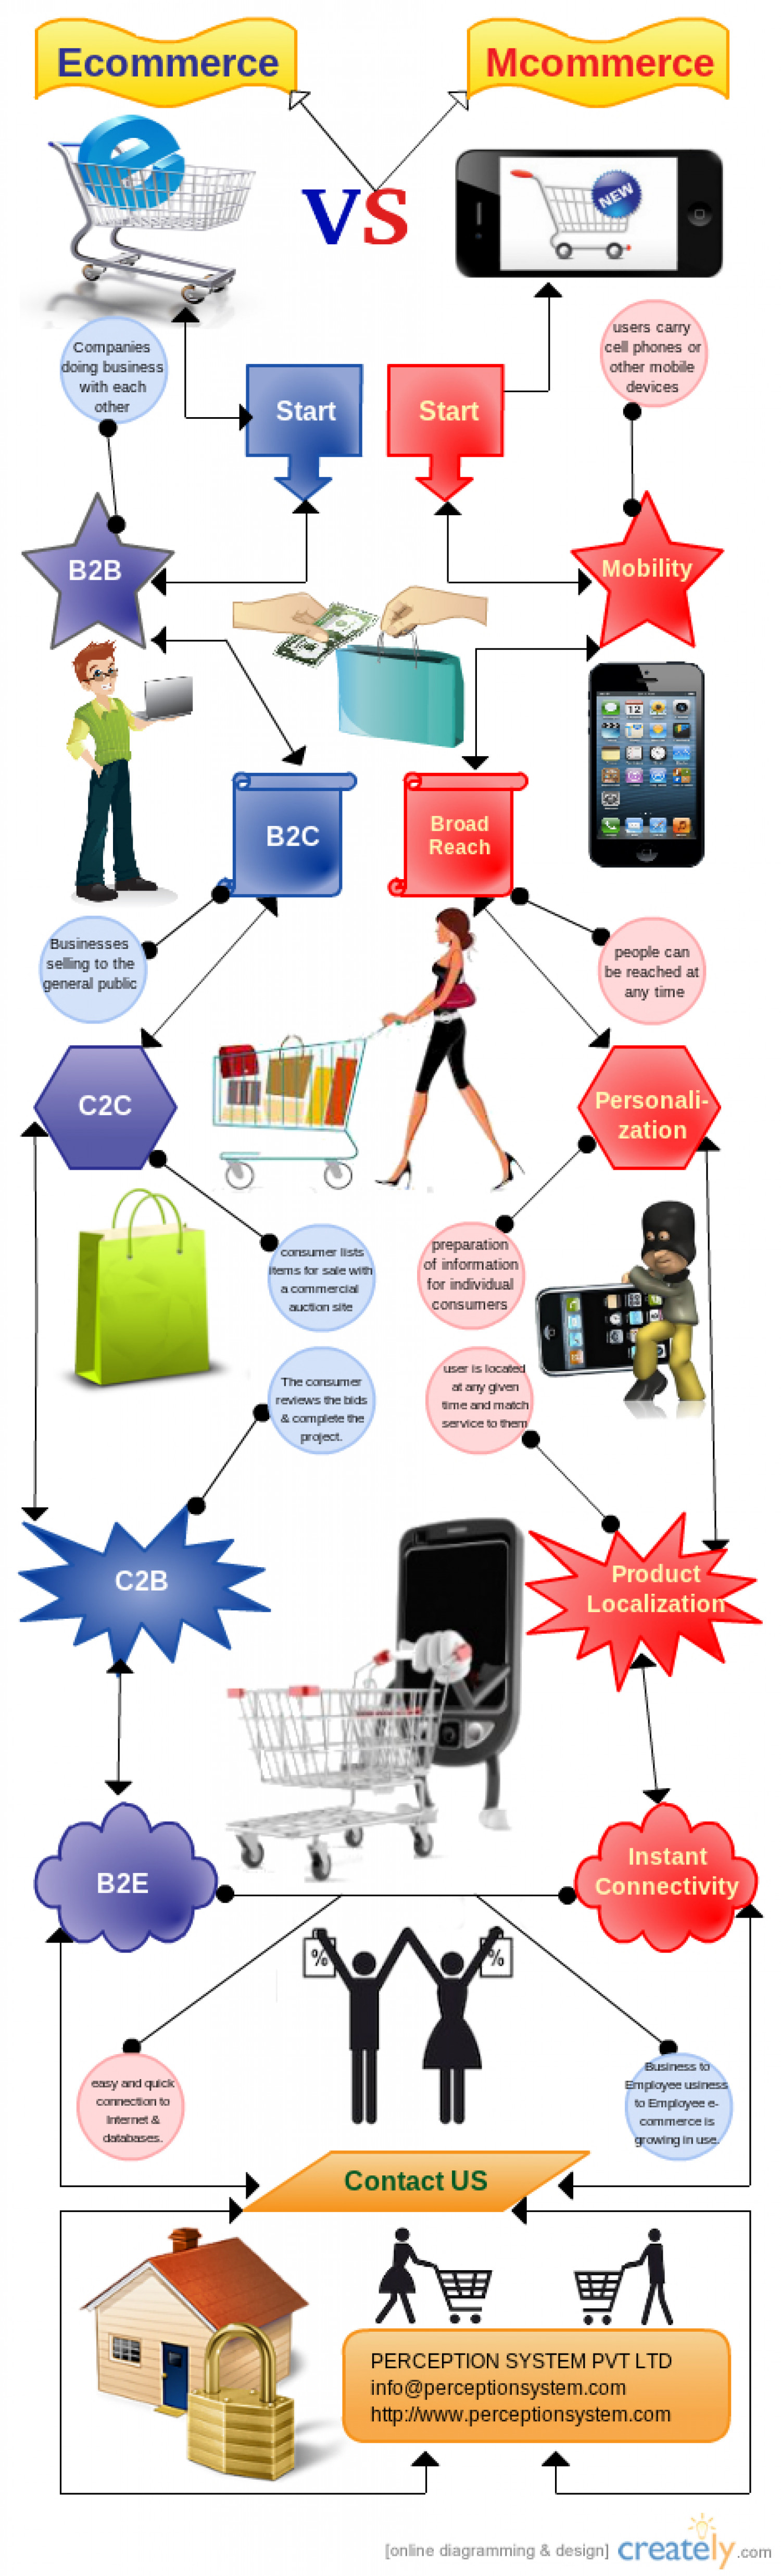 Ecommerce VS Mcommerce : Understanding The Differences Infographic